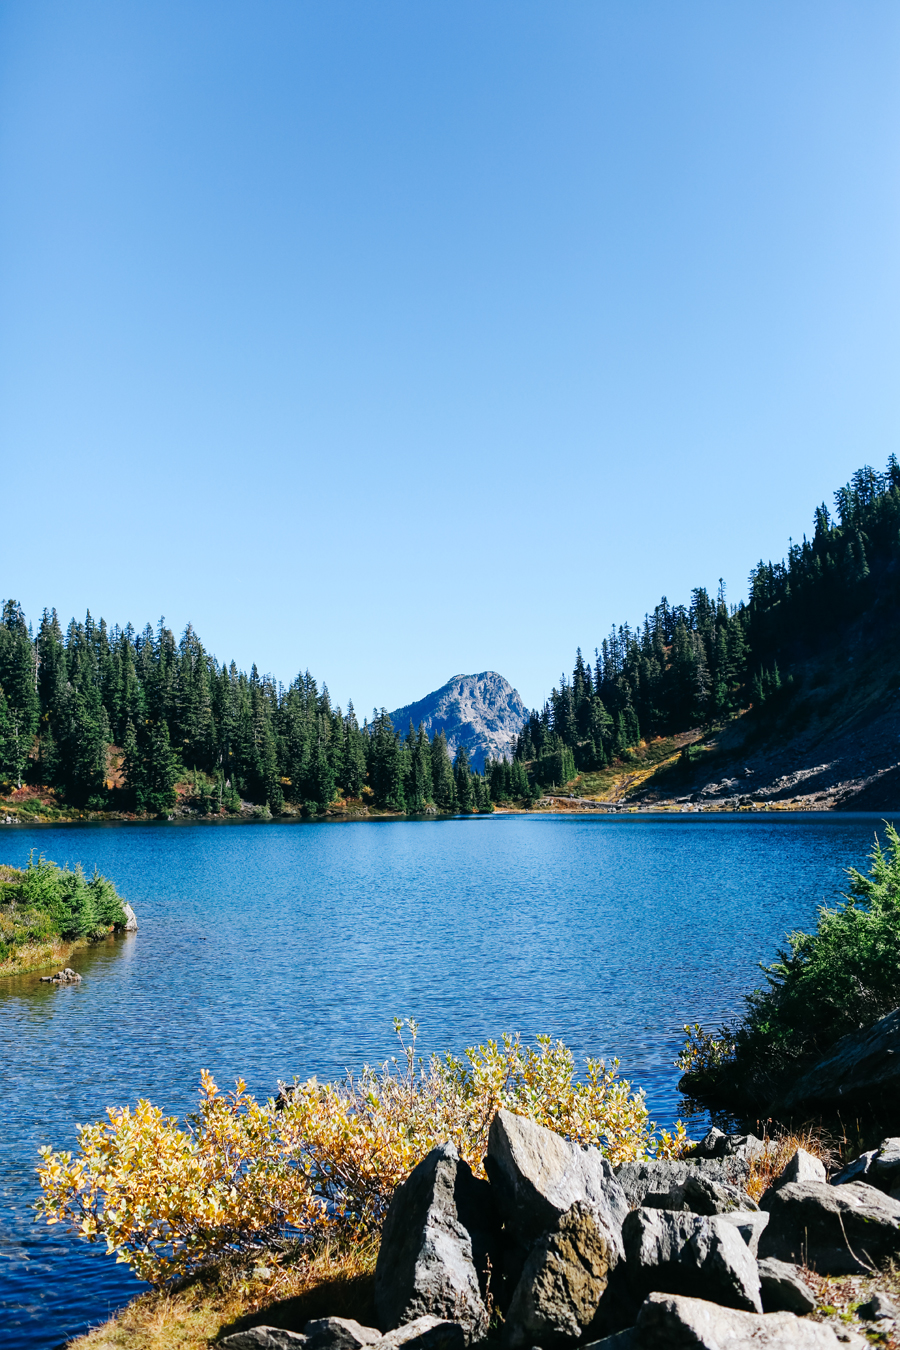 013-katheryn-moran-photography-twin-lakes-mount-baker-washington.jpg